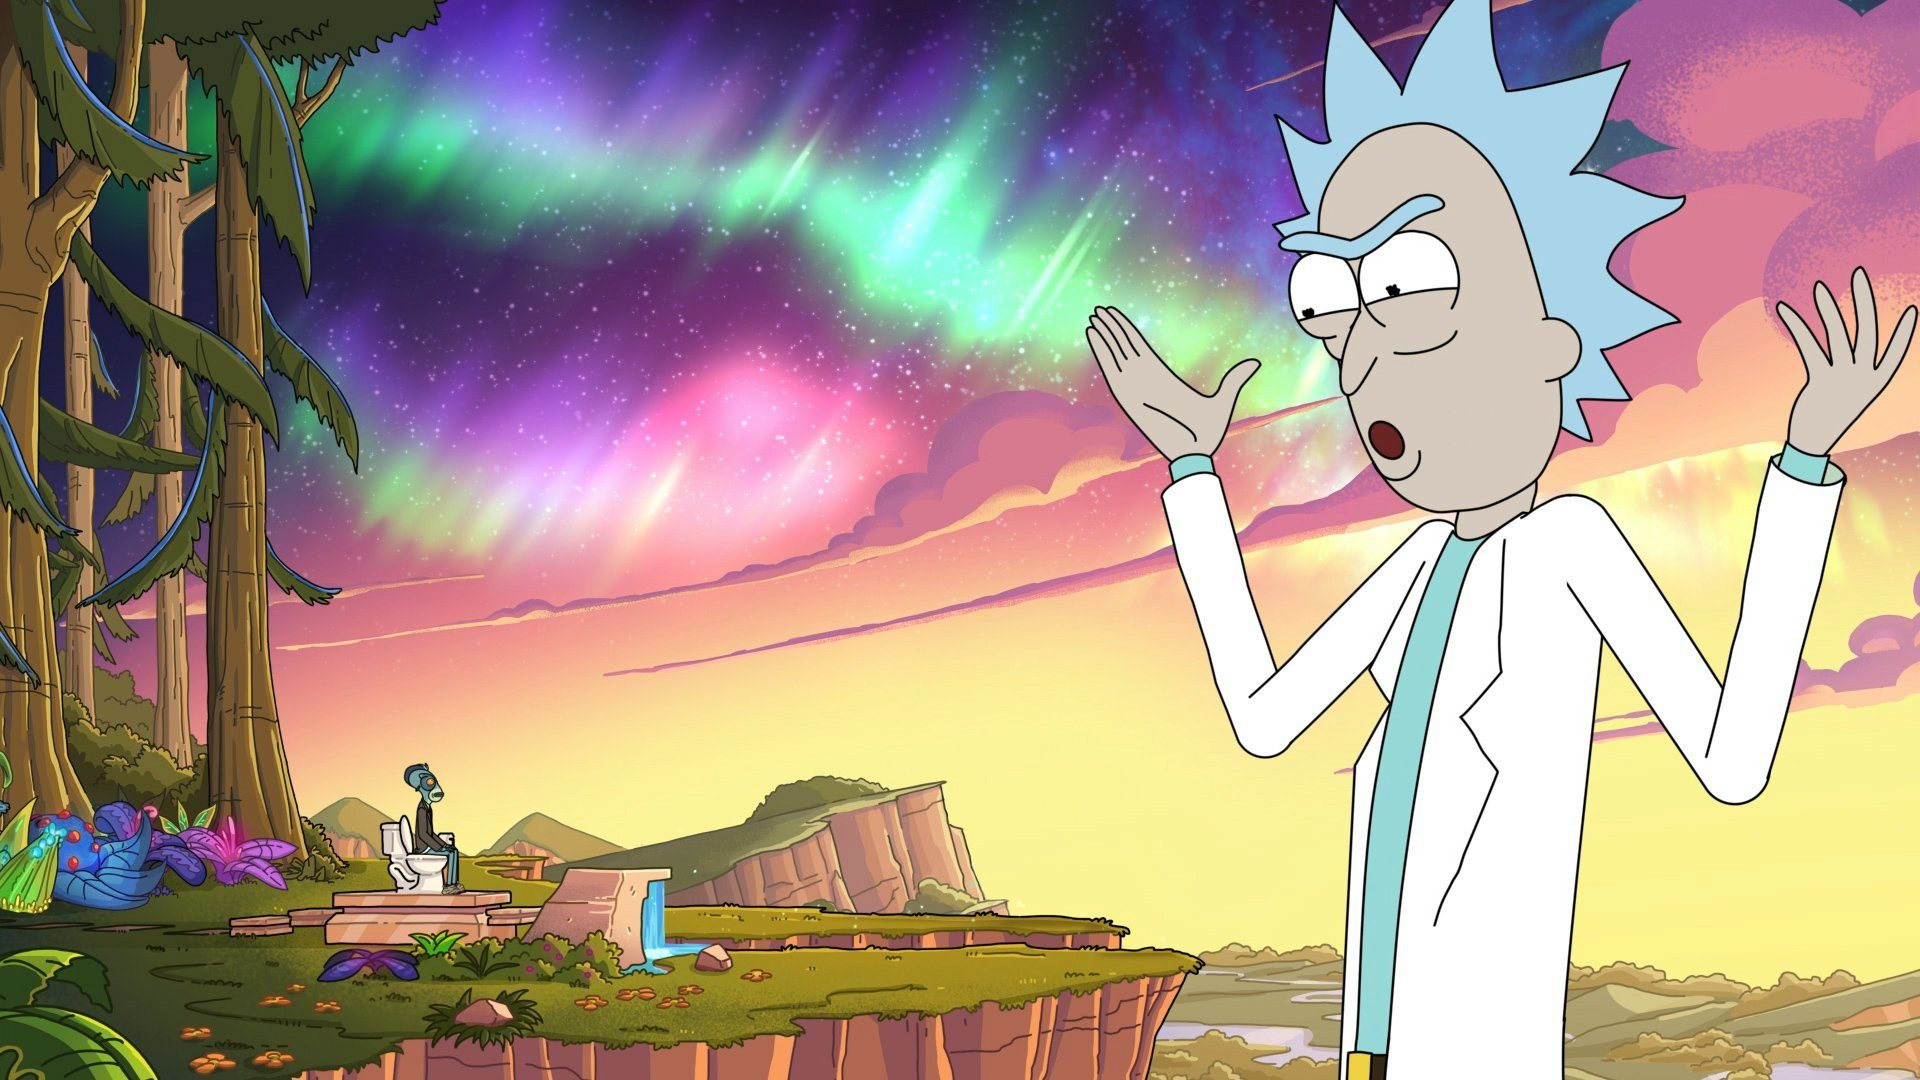 Rick and Morty Season 5 Will Not Have Pressure to Release Early